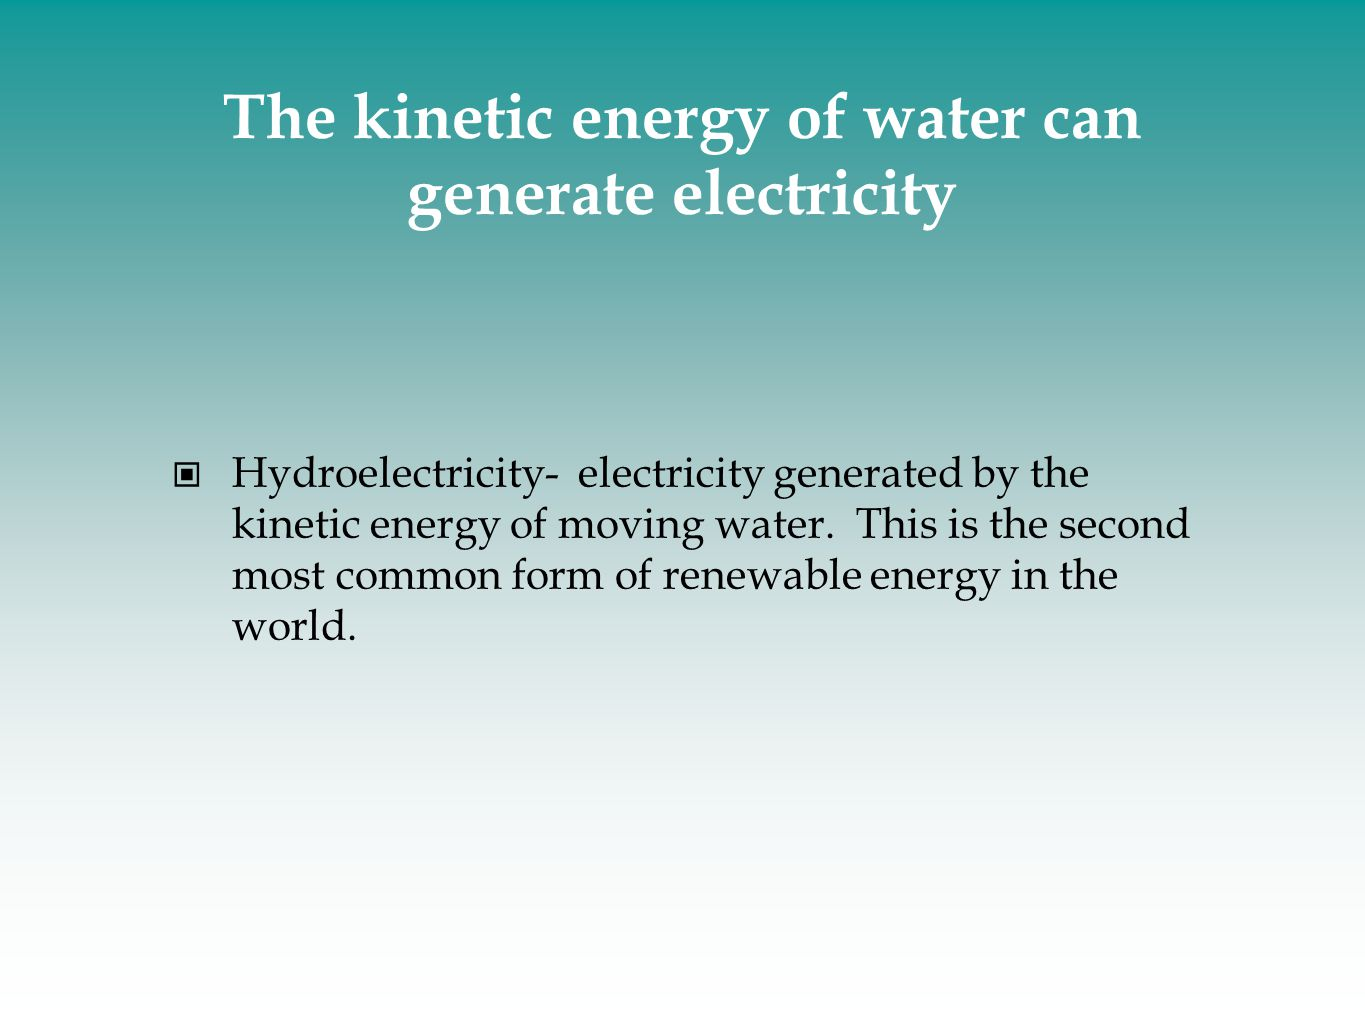 The kinetic energy of water can generate electricity